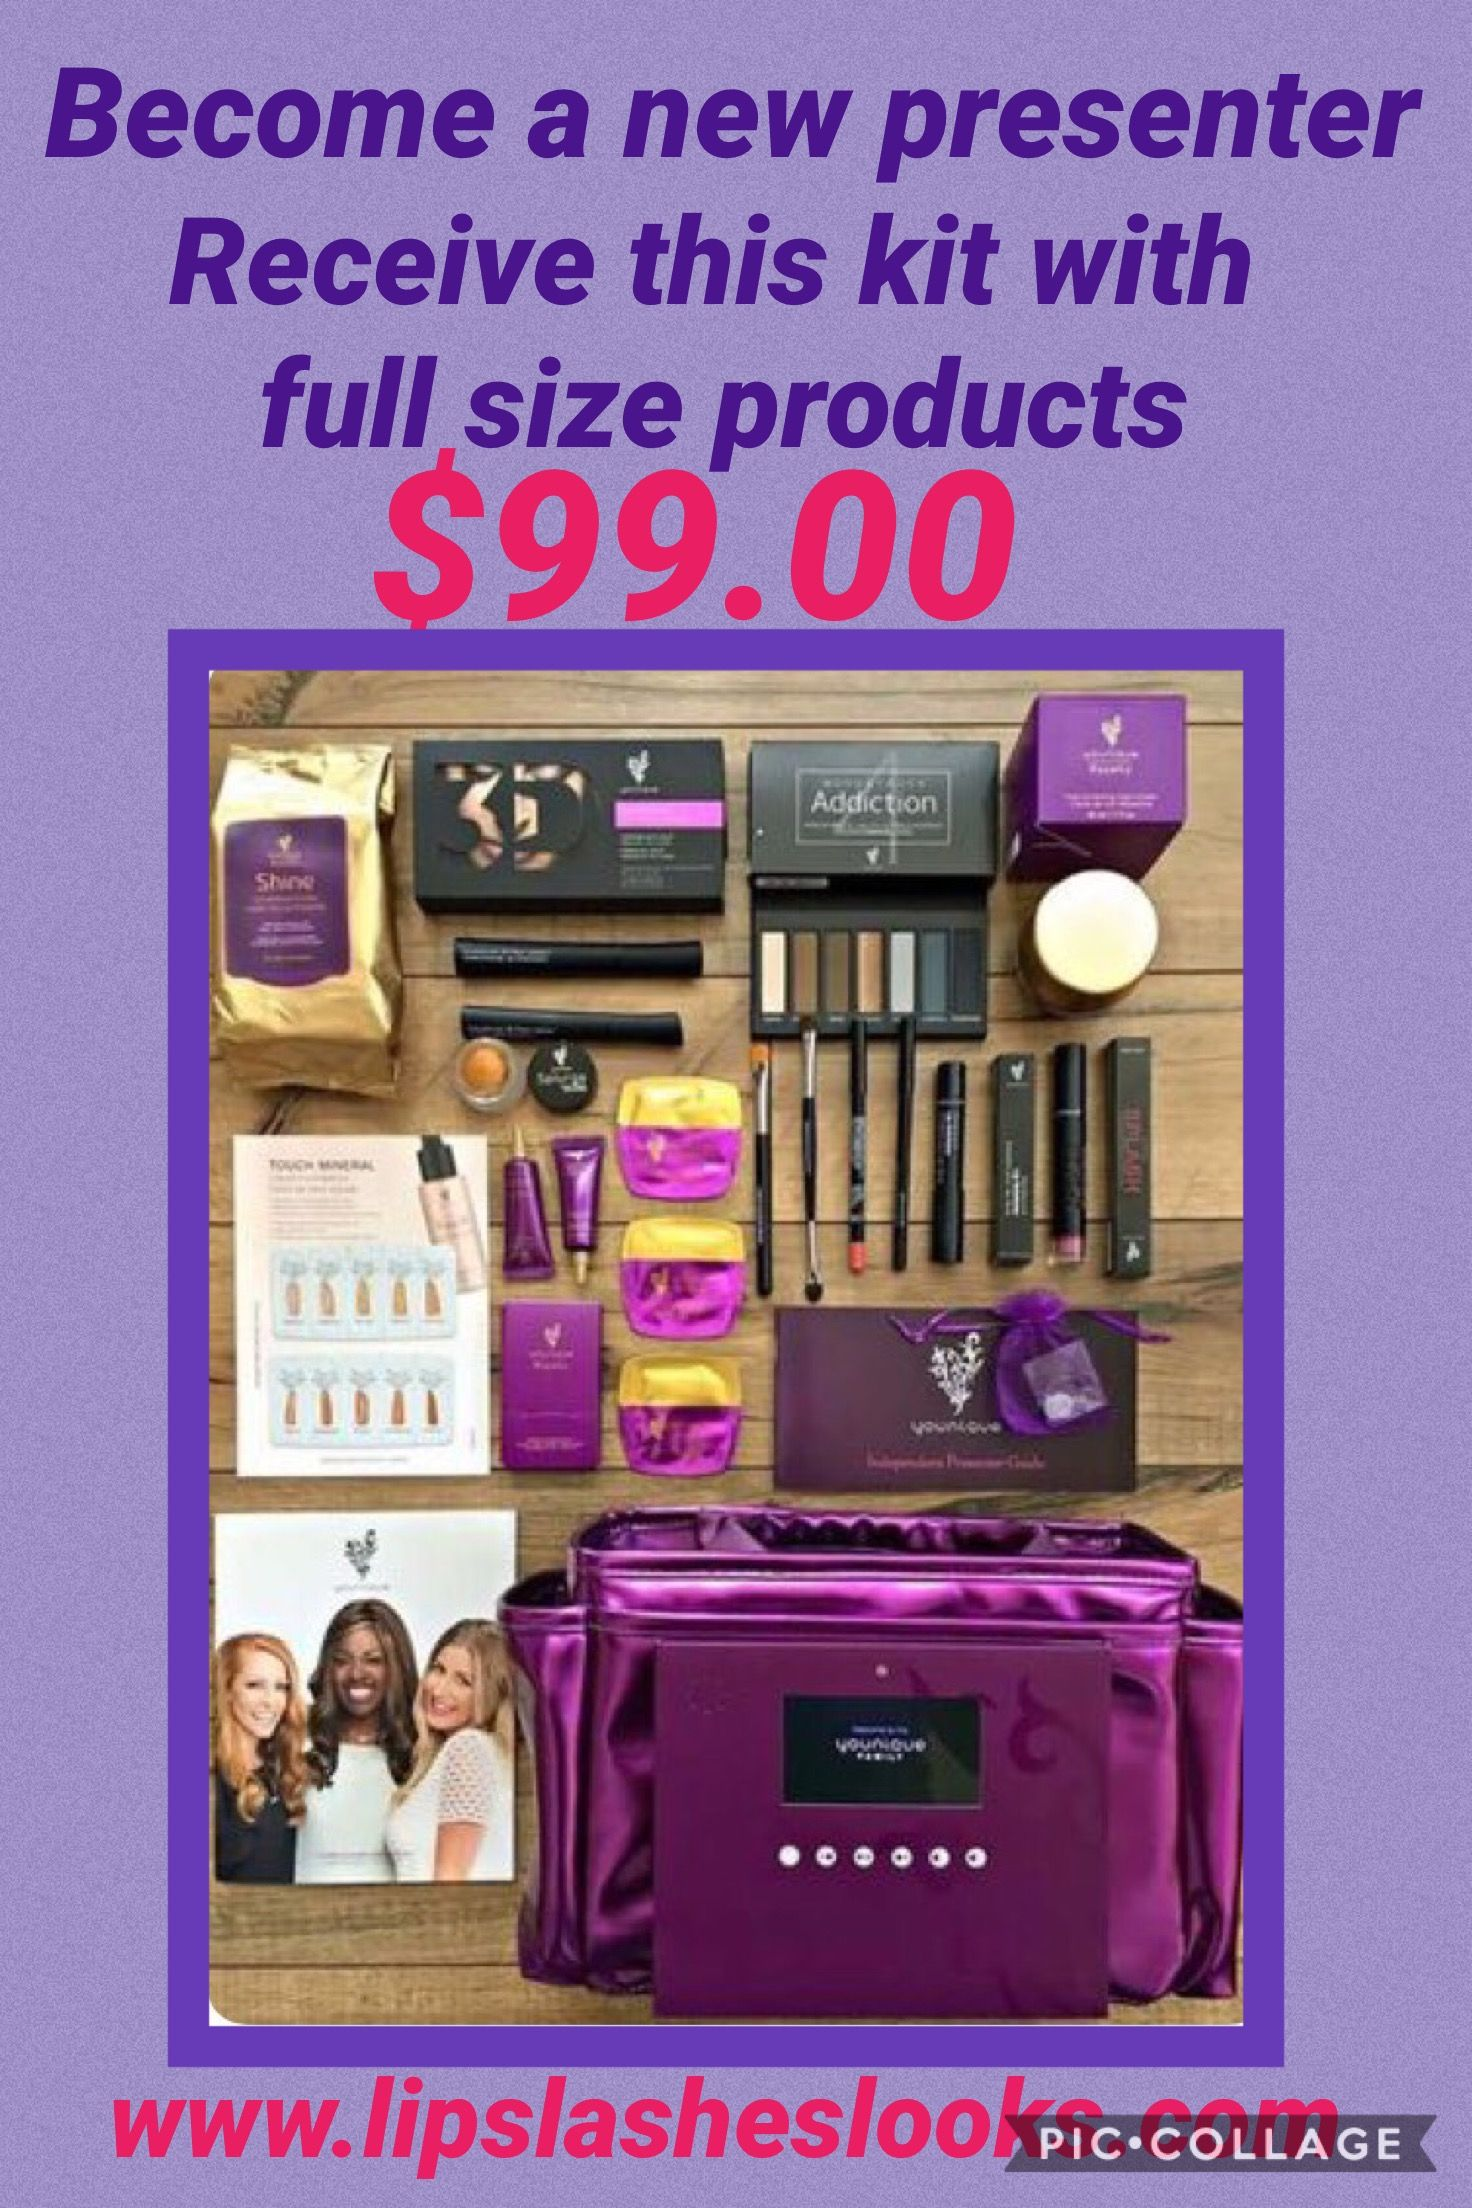 Option 1 You can buy beauty kit for products and discount